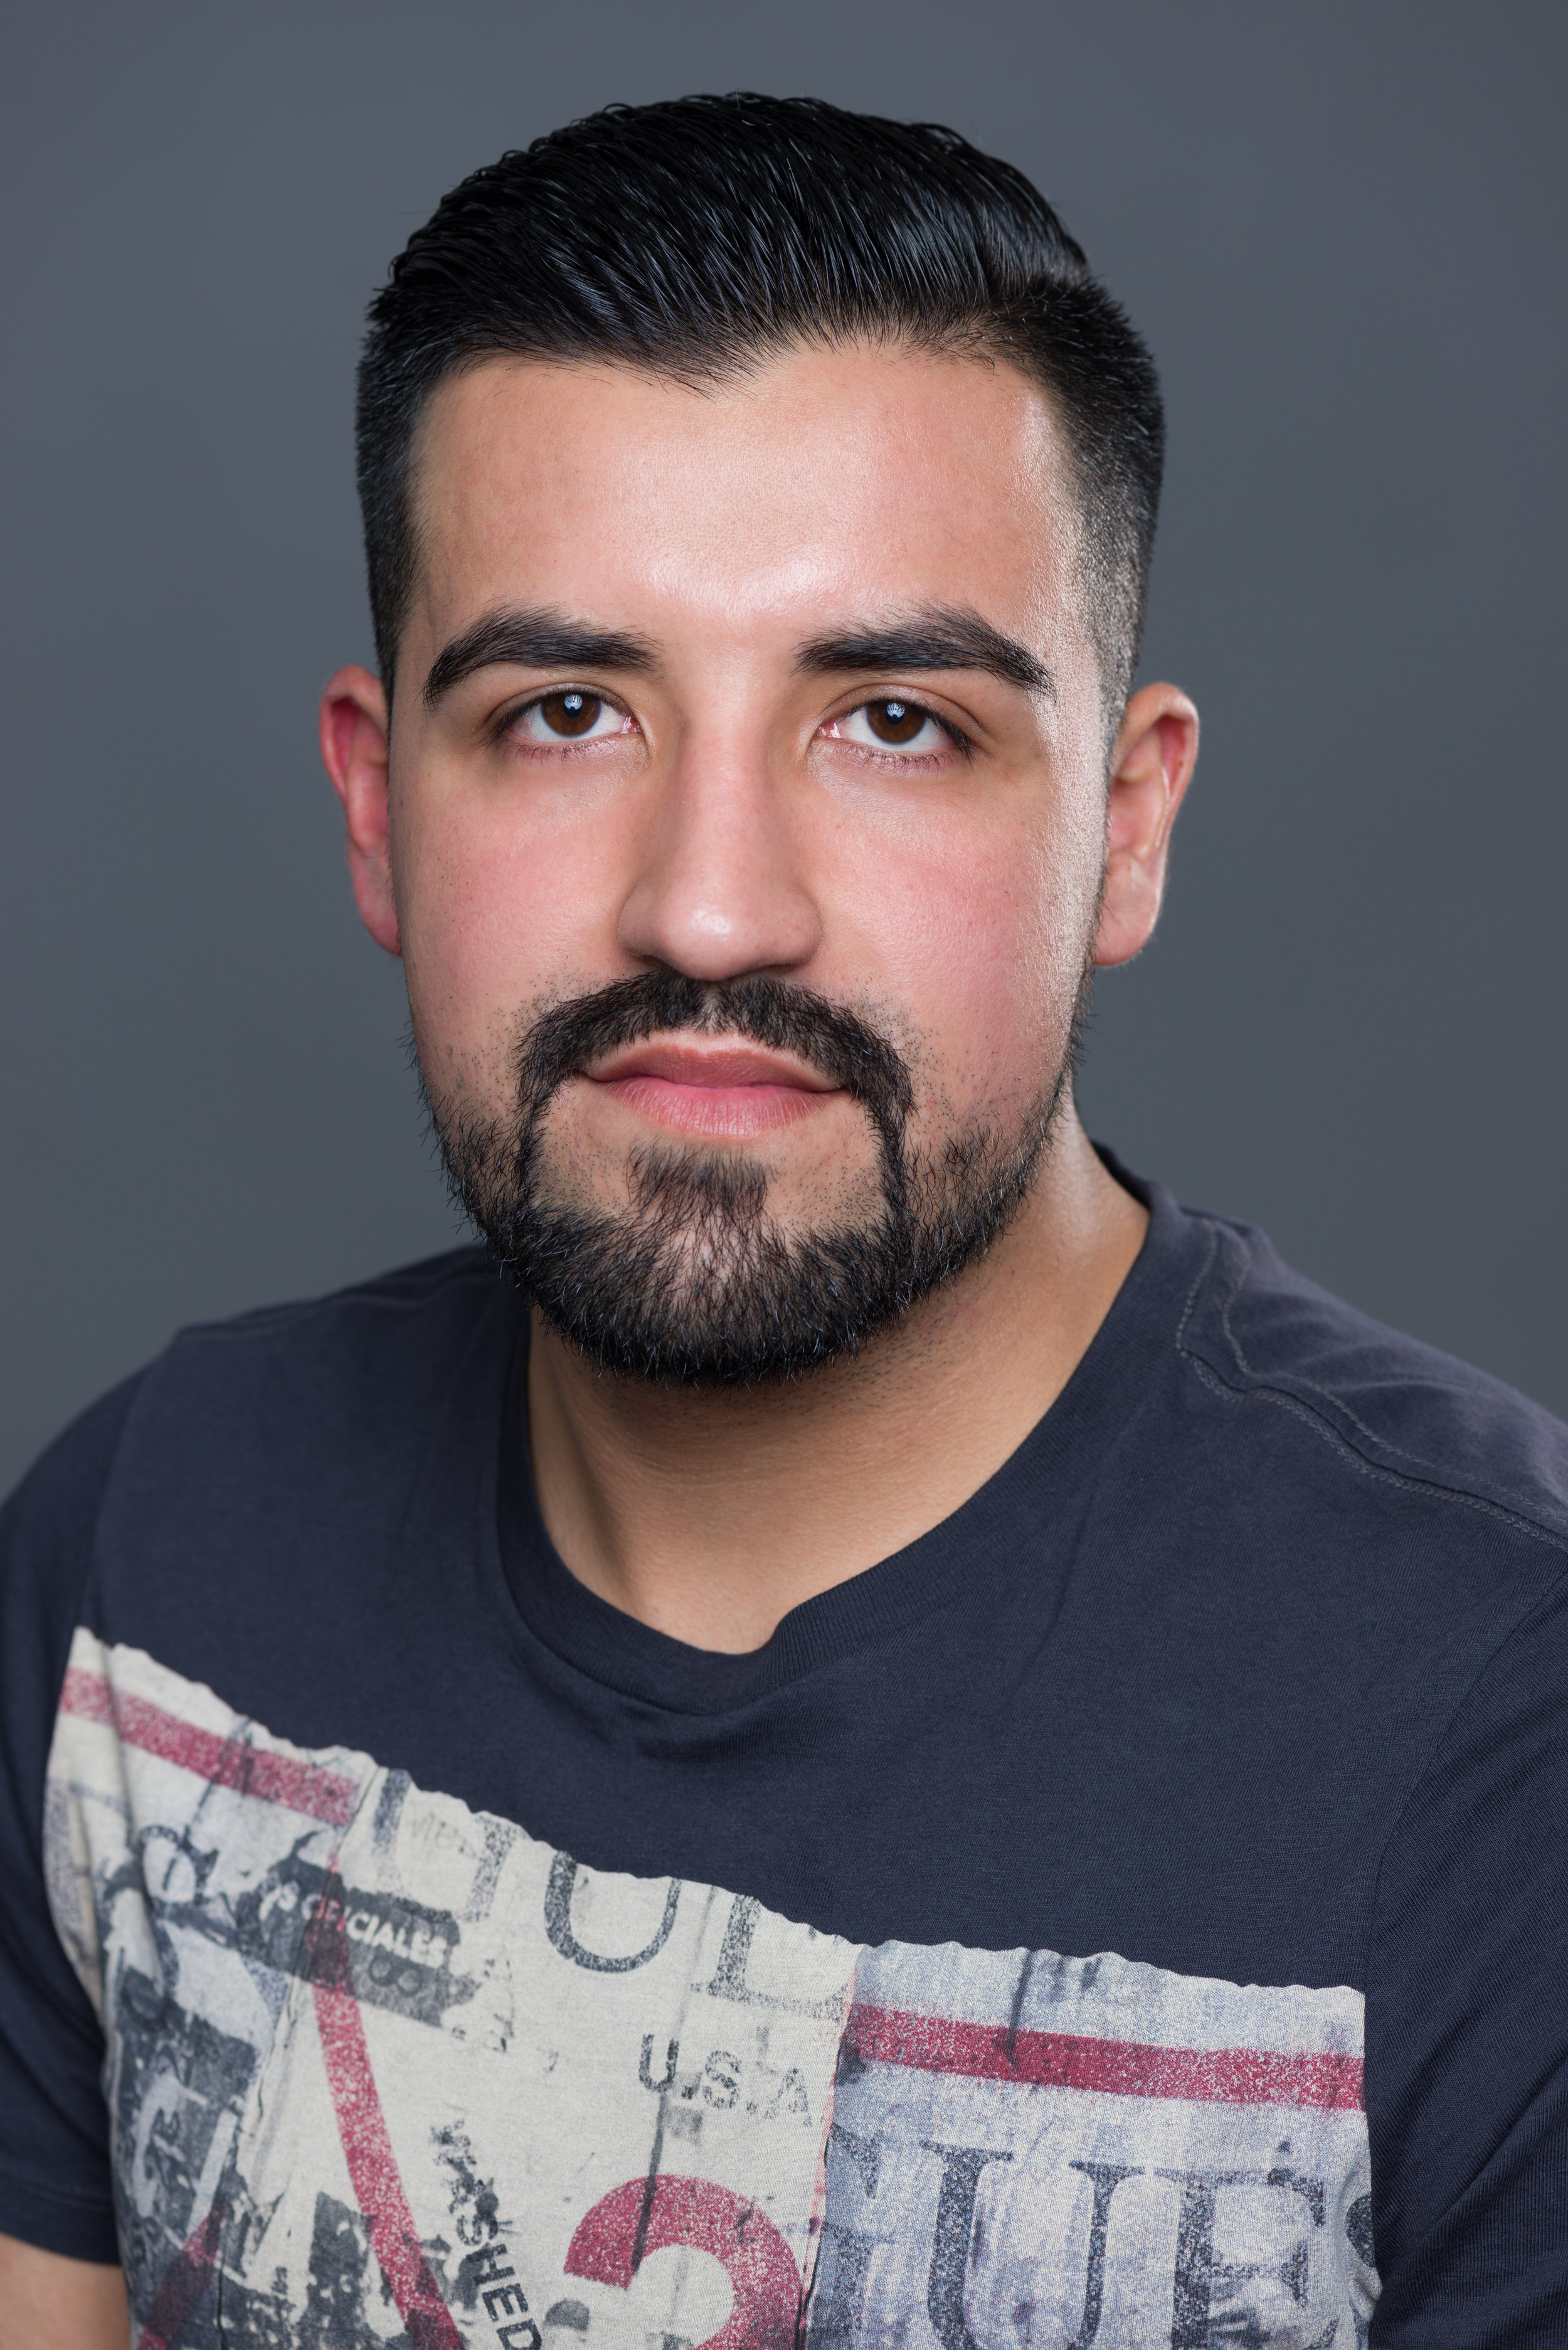 LUIS ROSAS   Auto Technician - 10 years of experience